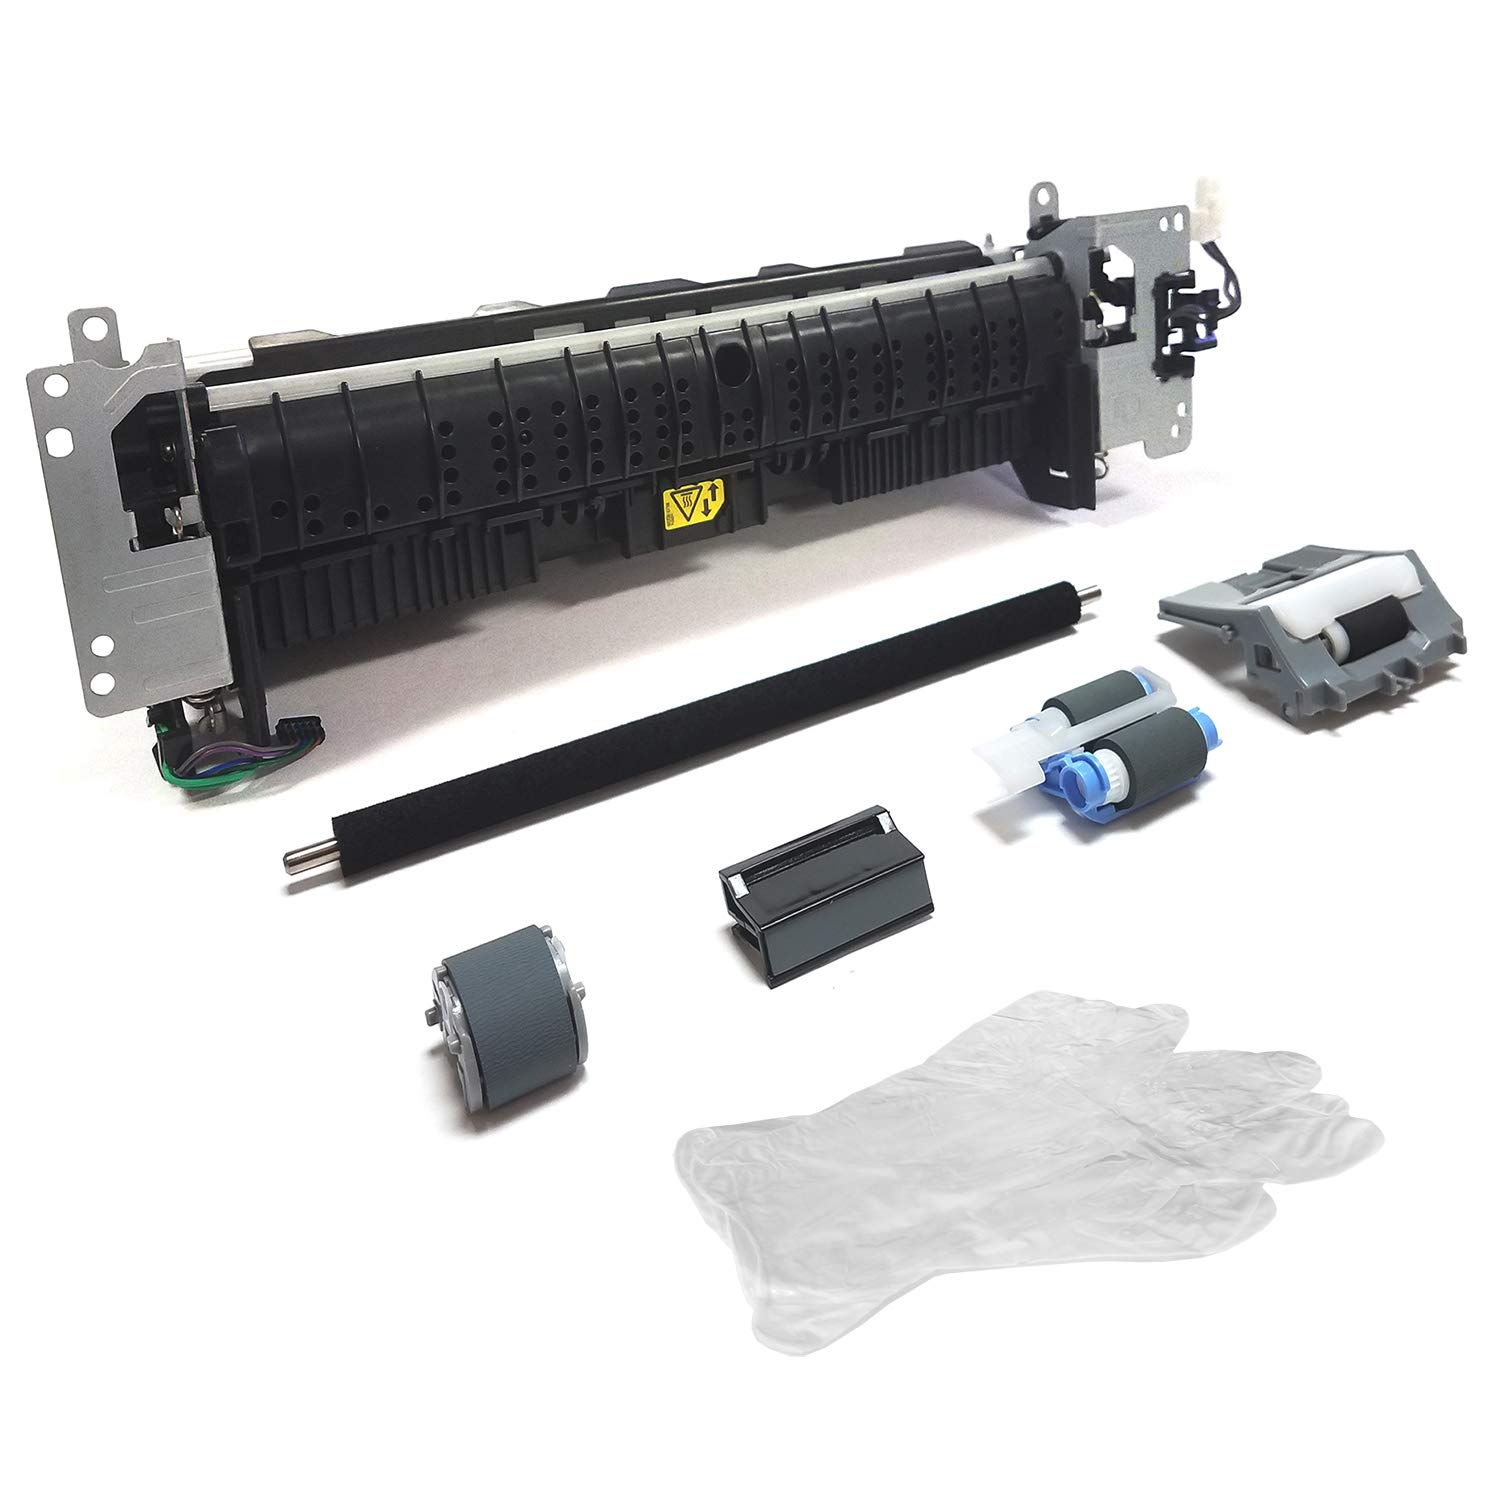 Altru Print RM2-5679-MK-AP (FM1-V151) Maintenance Kit for HP Laserjet Pro M501, M506, M527 (110V) with Fuser, F2A68-67910 Transfer Roller, F2A68-67914 MP Tray and 1 Pair of F2A68-67913 Tray 2 Rollers